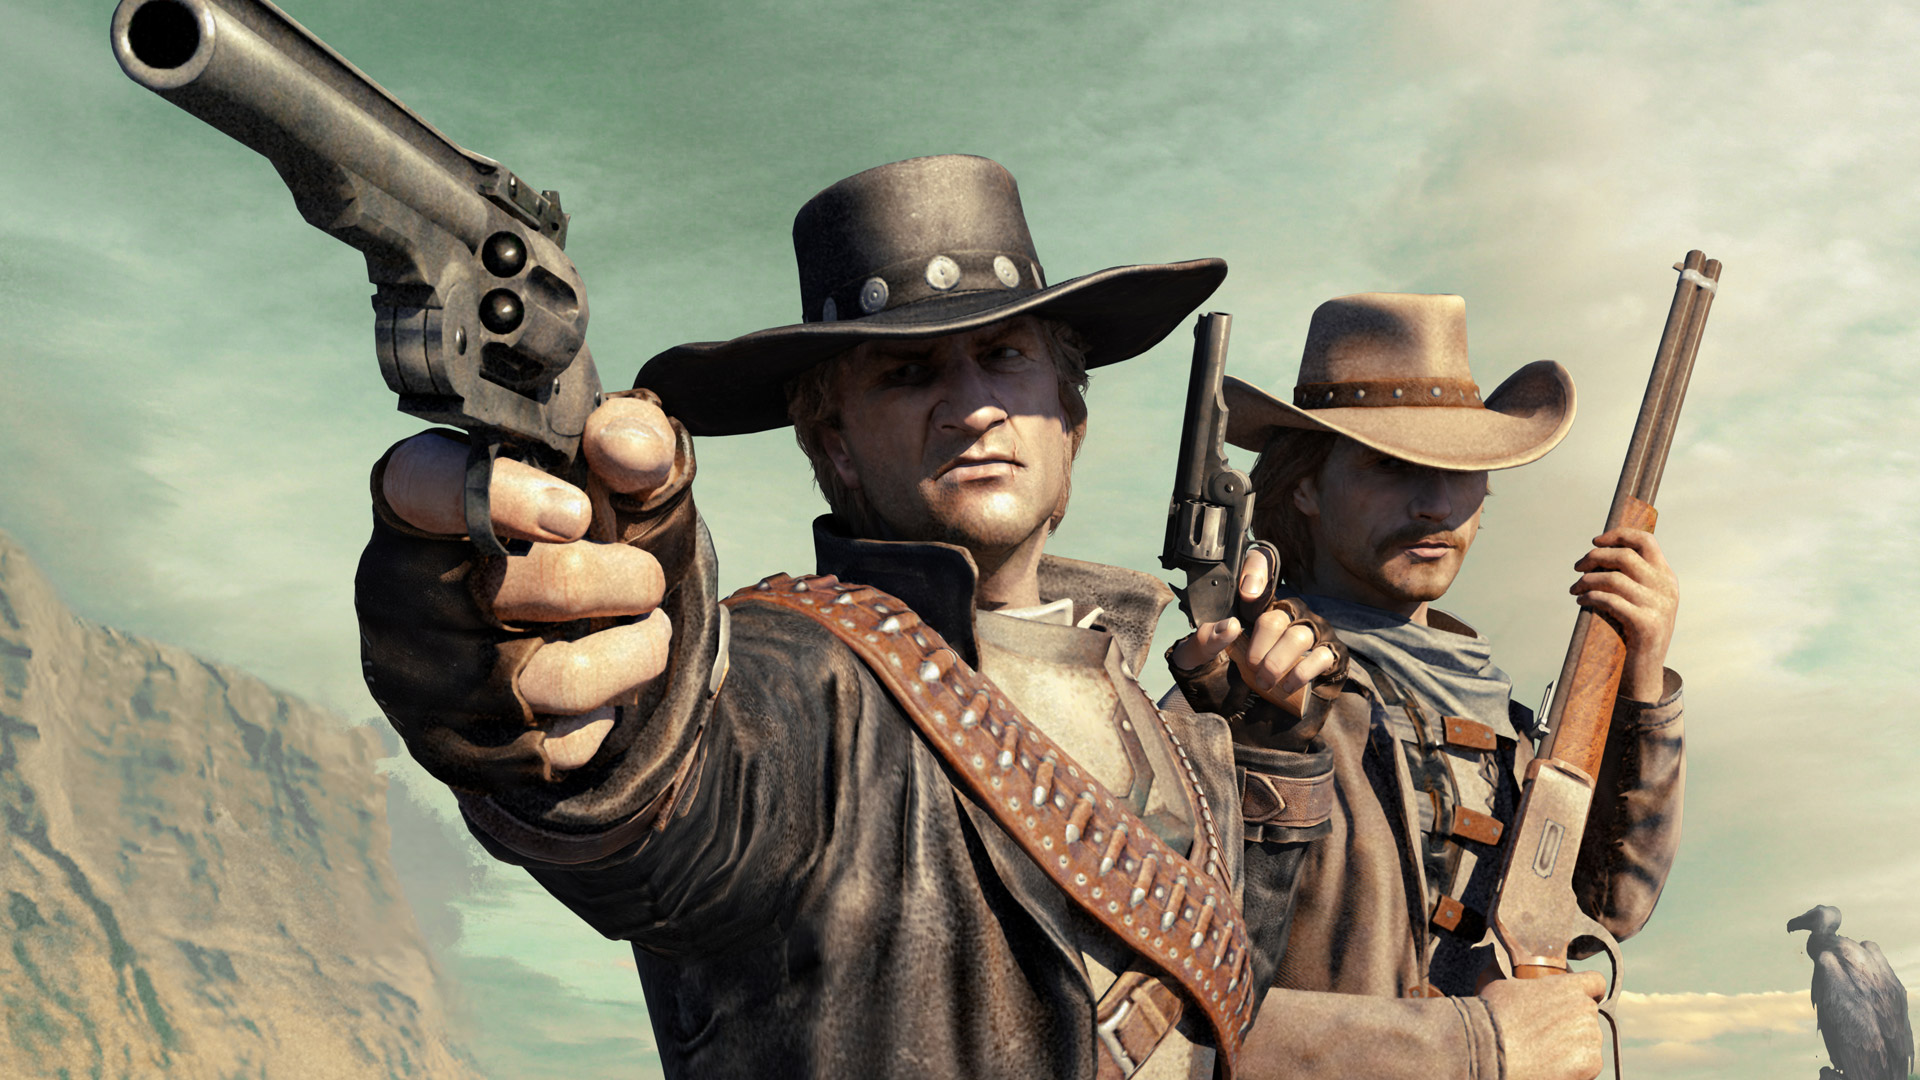 Call of Juarez: Bound in Blood Wallpaper in 1920x1080